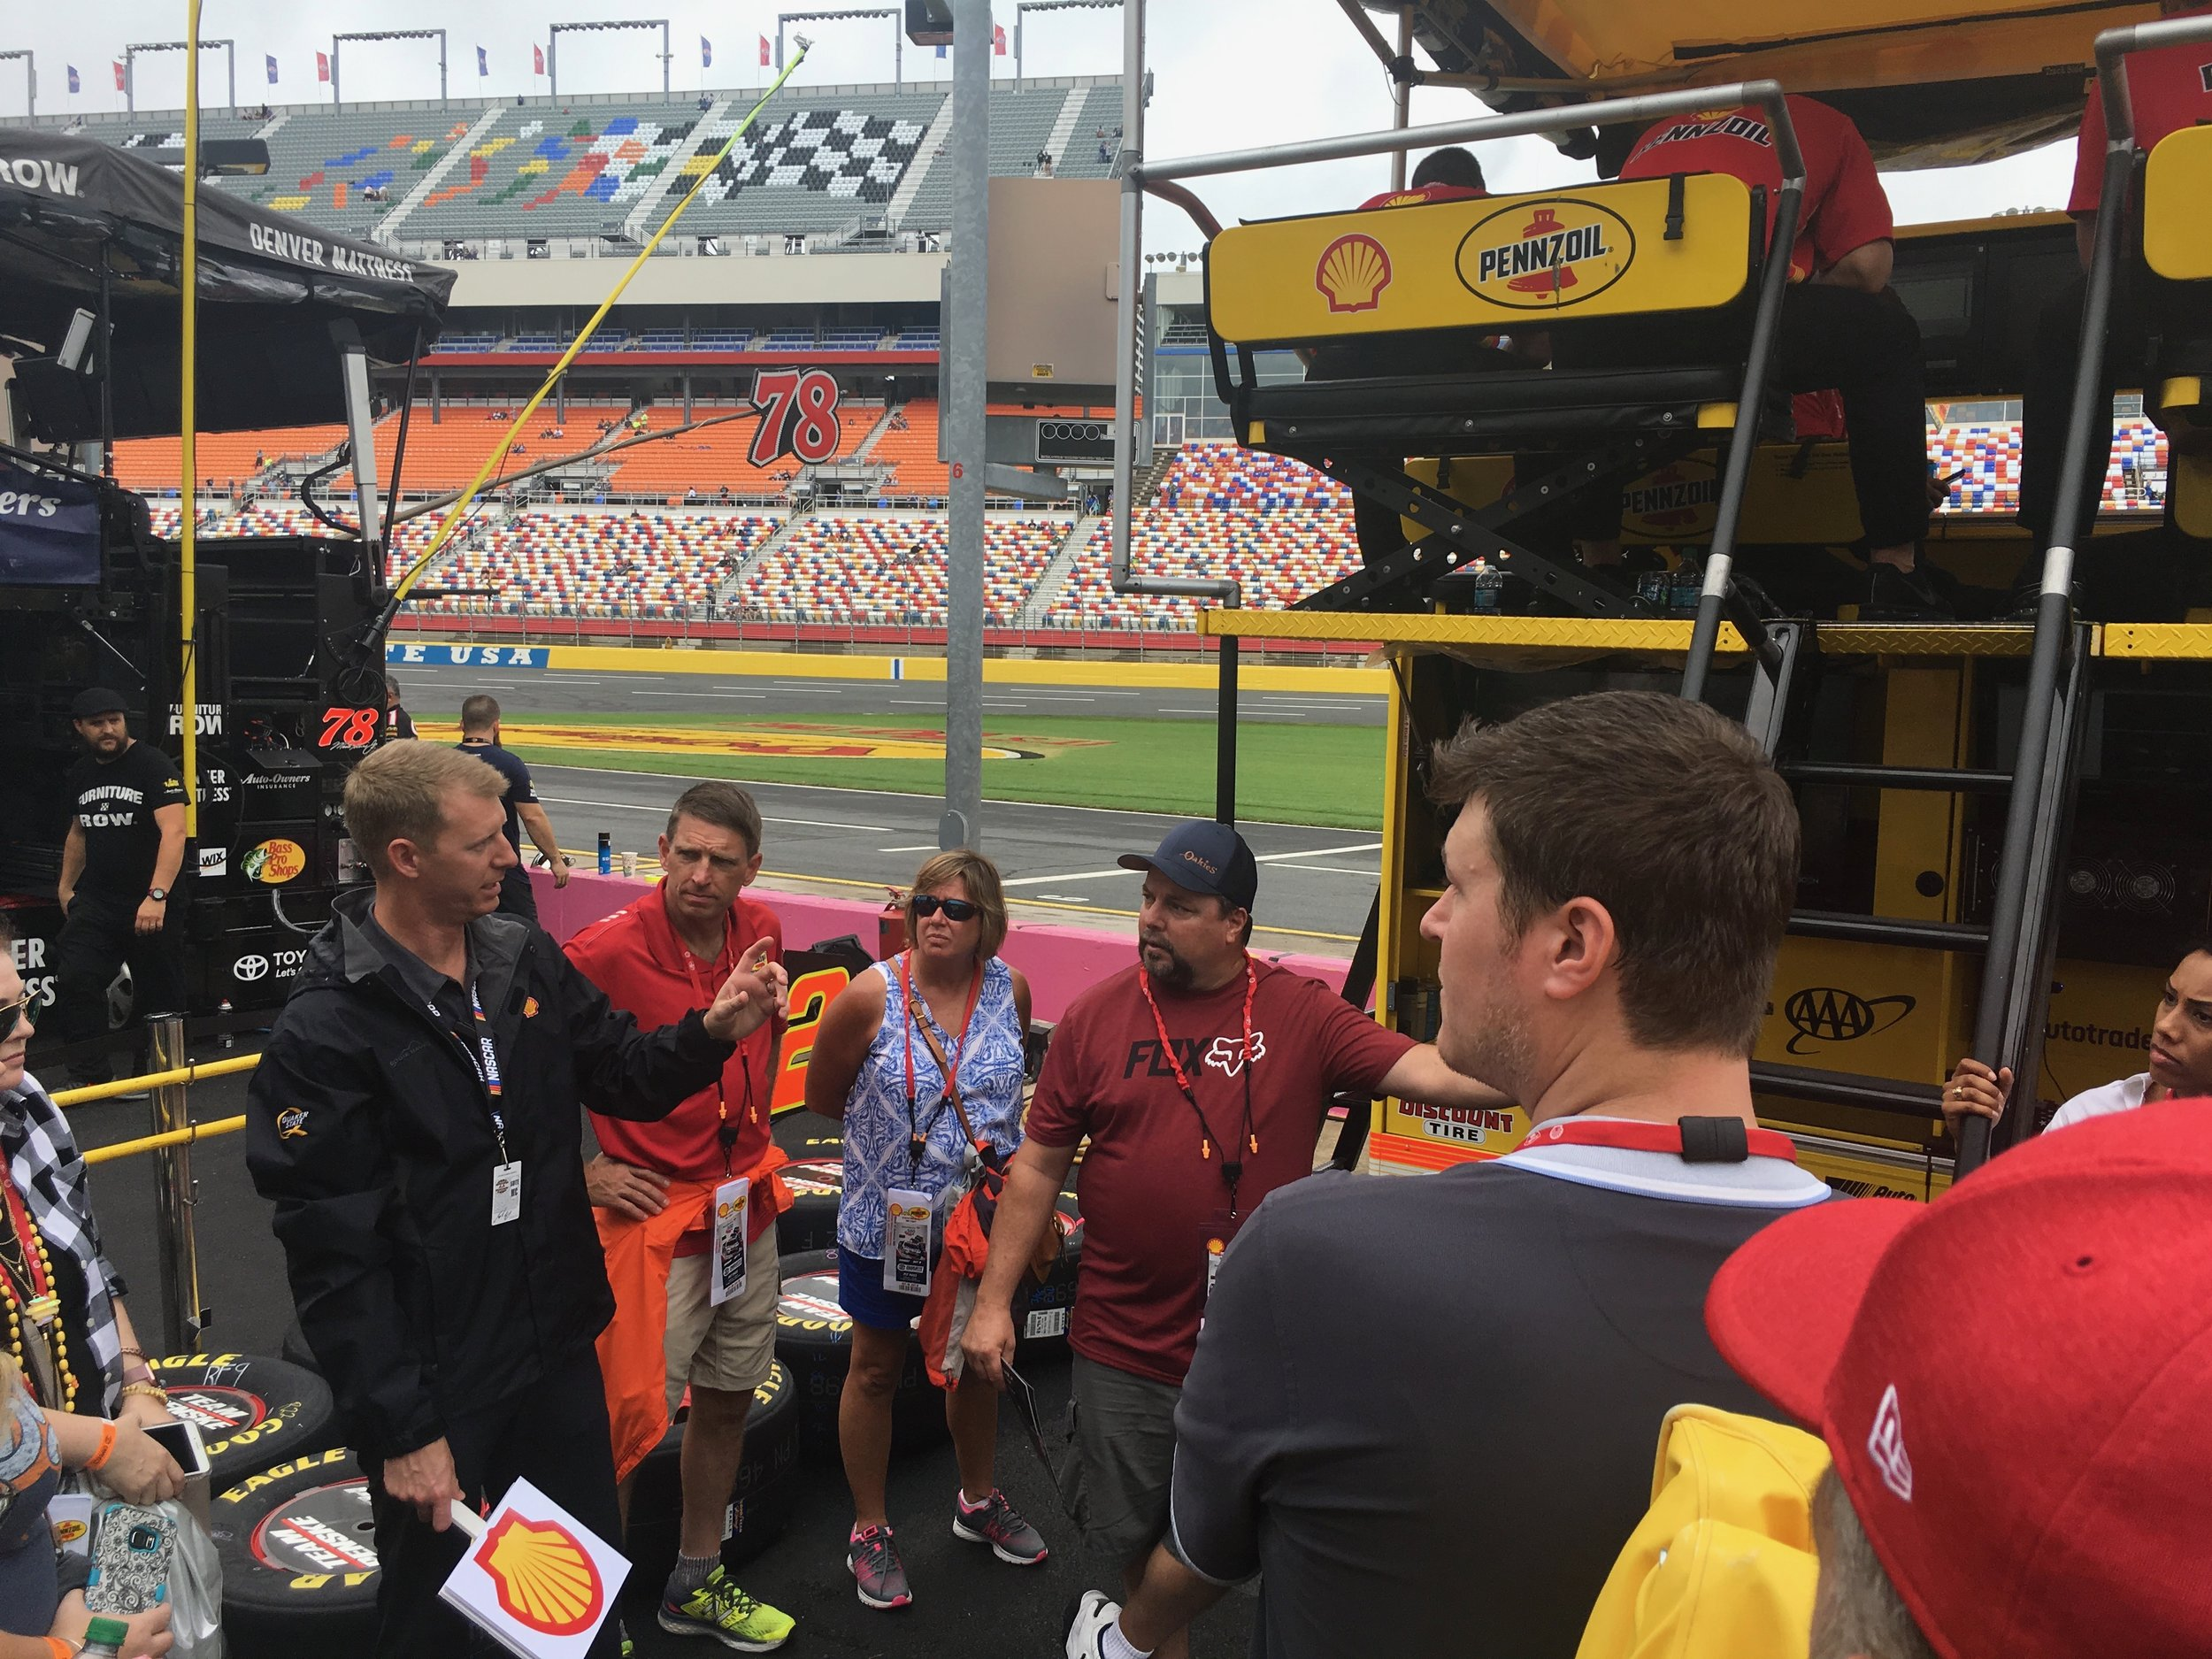 Guests go behind the scenes with an exclusive tour of the NASCAR pits.